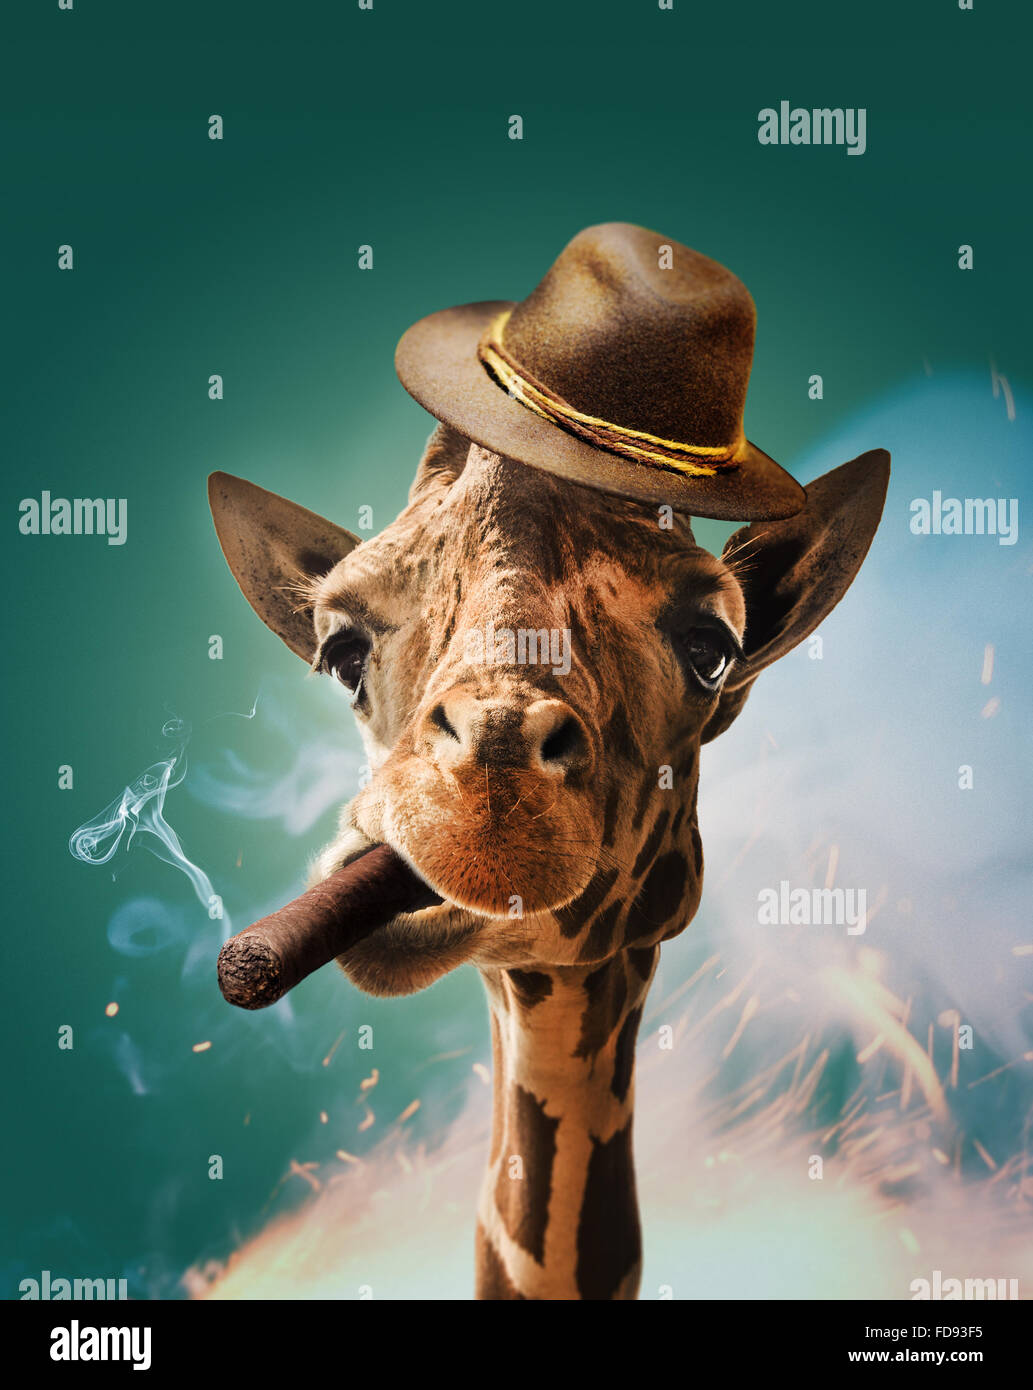 Cool giraffe with cigar and hat on turquoise background. - Stock Image